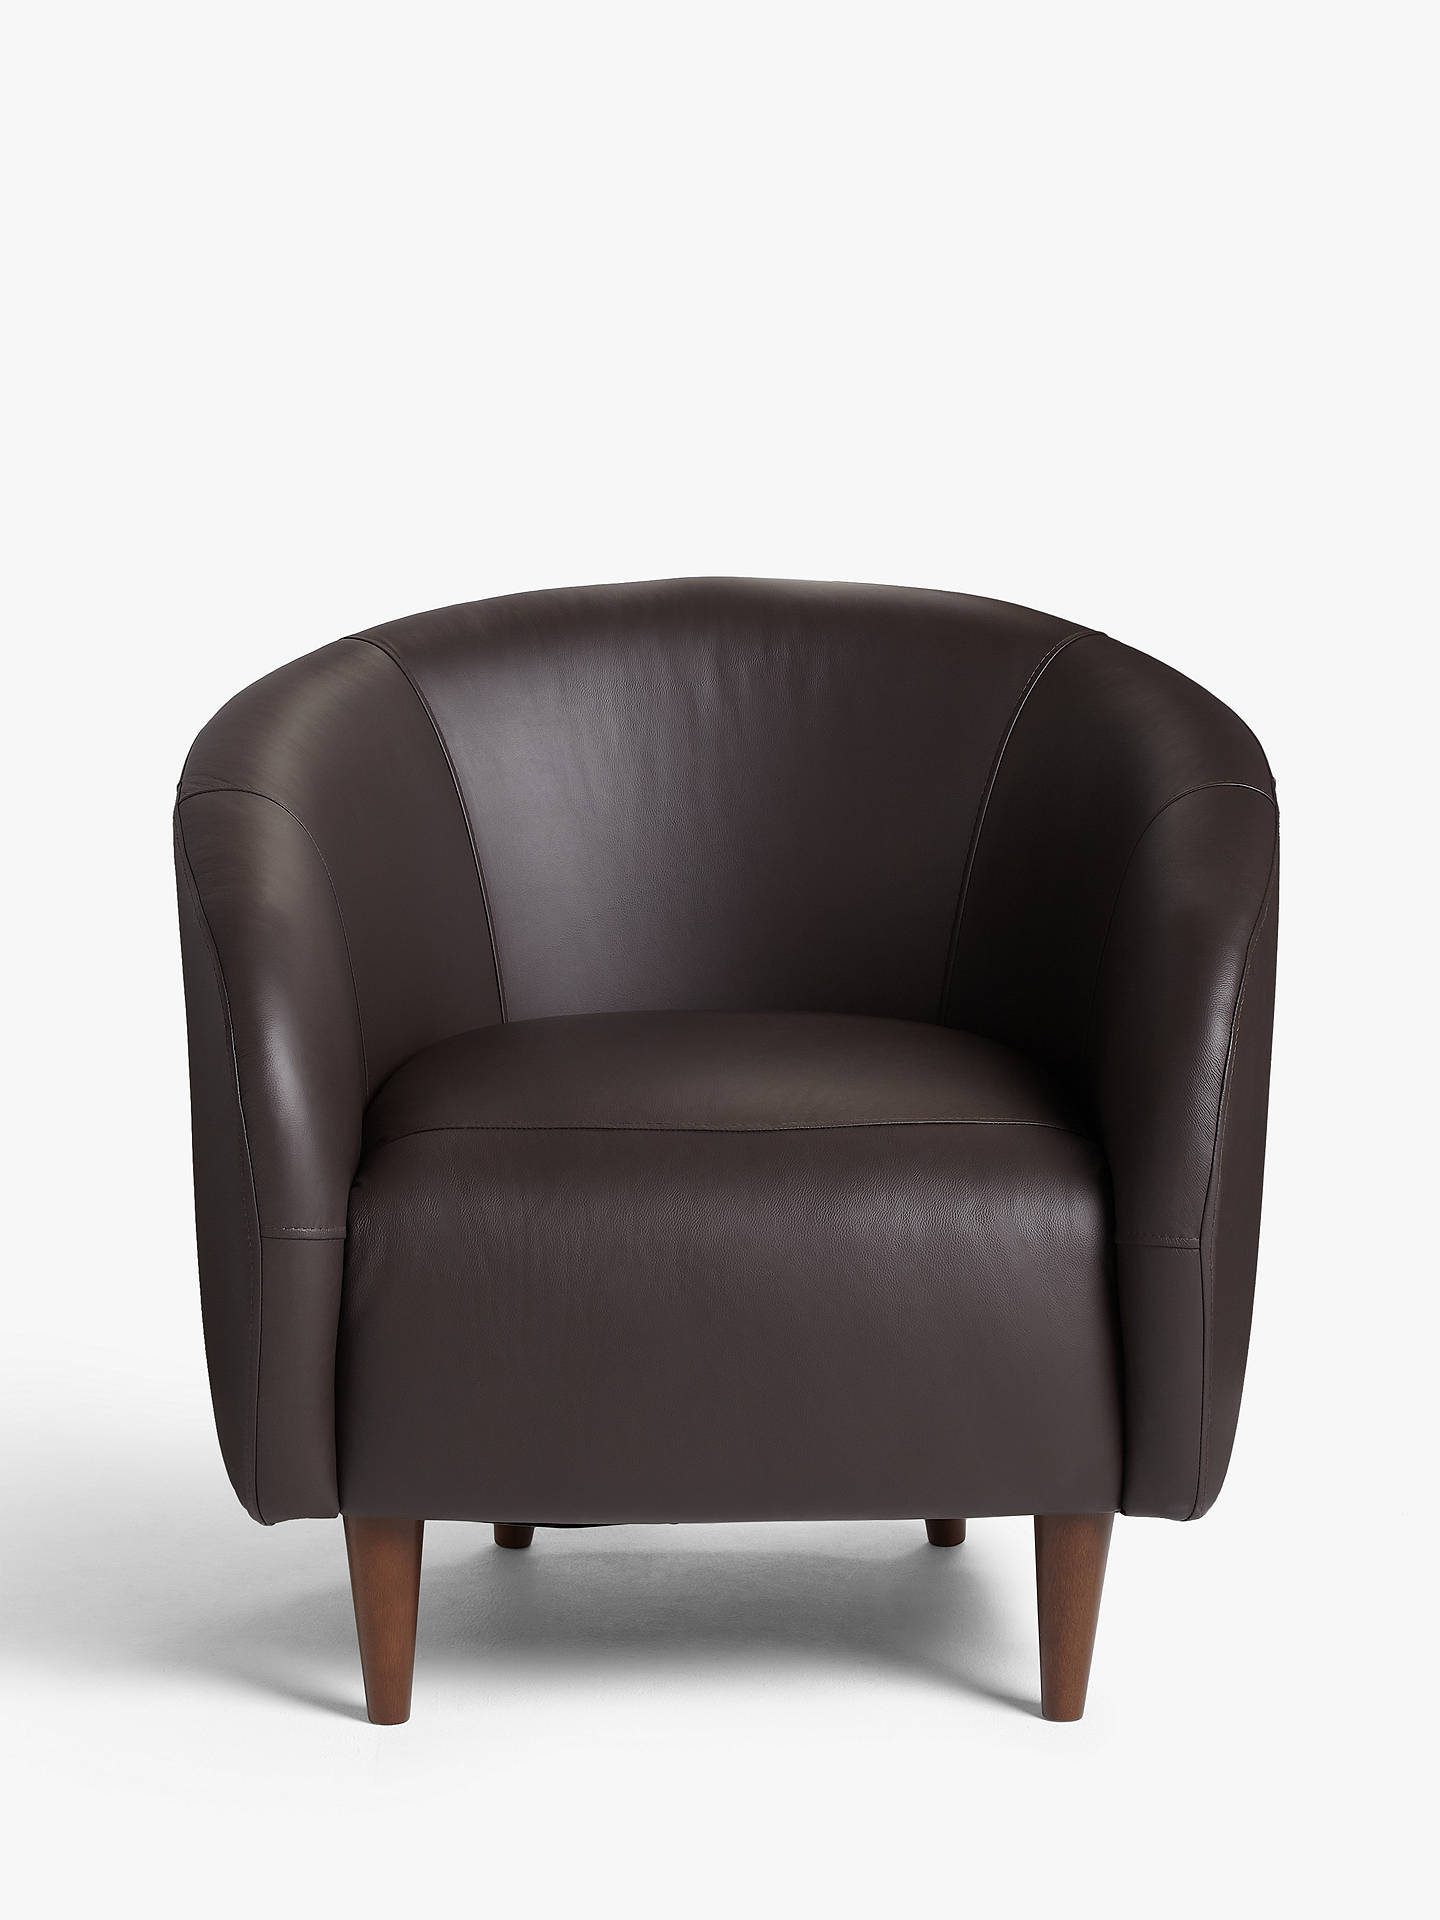 Buy House by John Lewis Scoop Leather Armchair, Dark Leg, Contempo Dark Chocolate Online at johnlewis.com